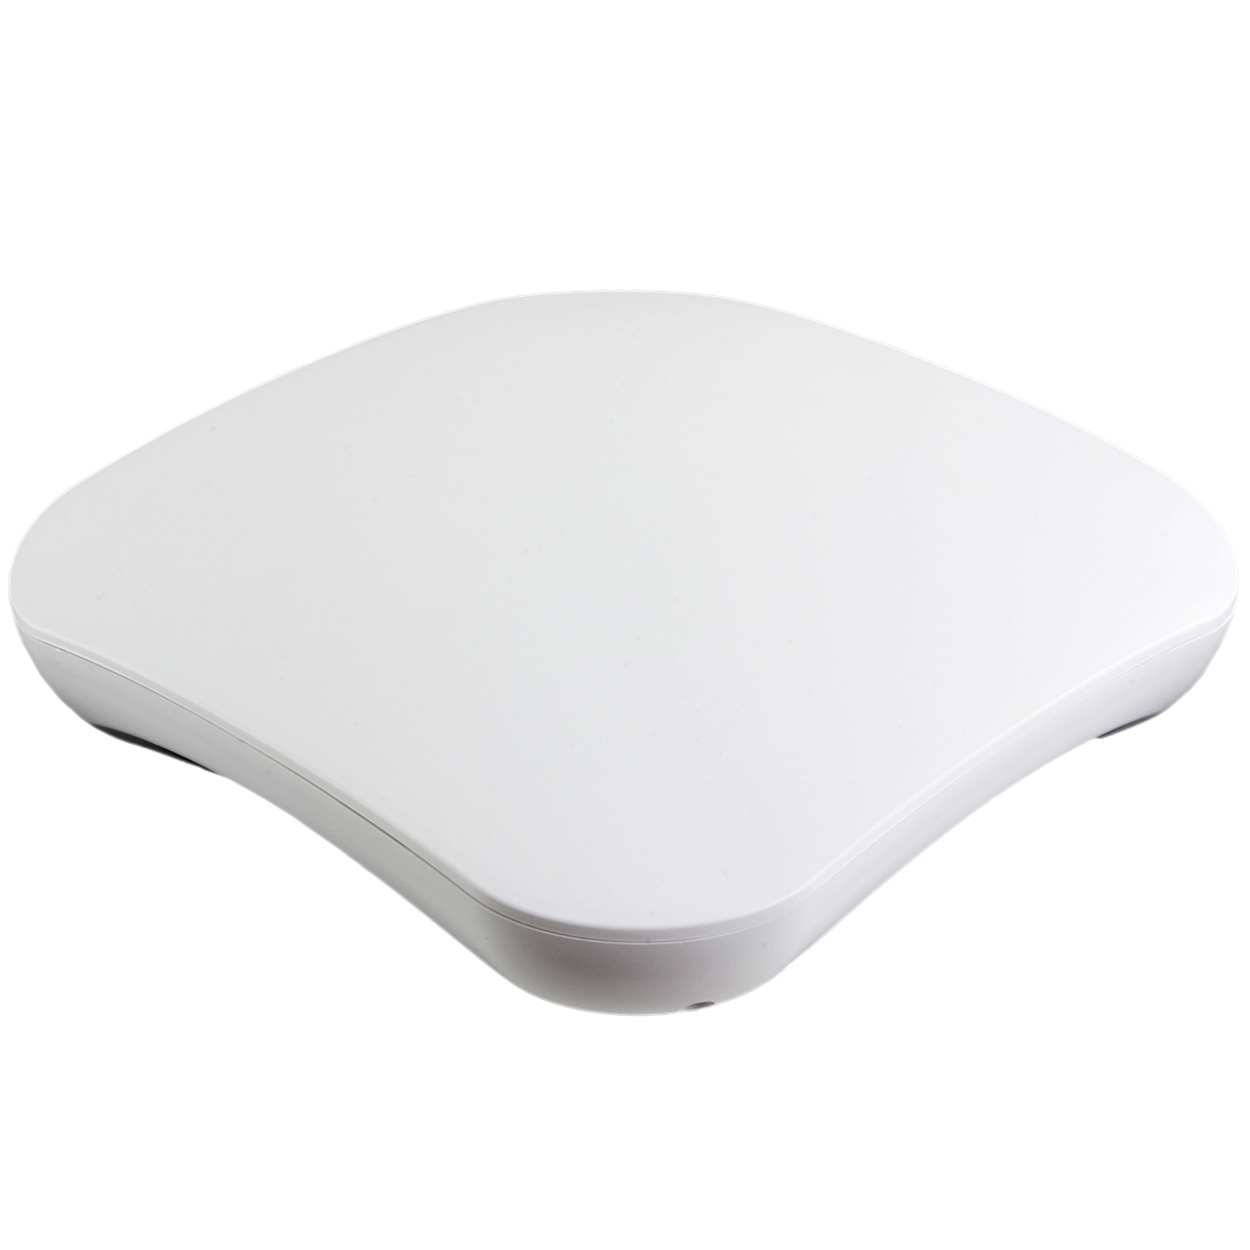 5.8GHz Wireless Outdoor CPE with DIP Function (Point-to-Multi-Point)